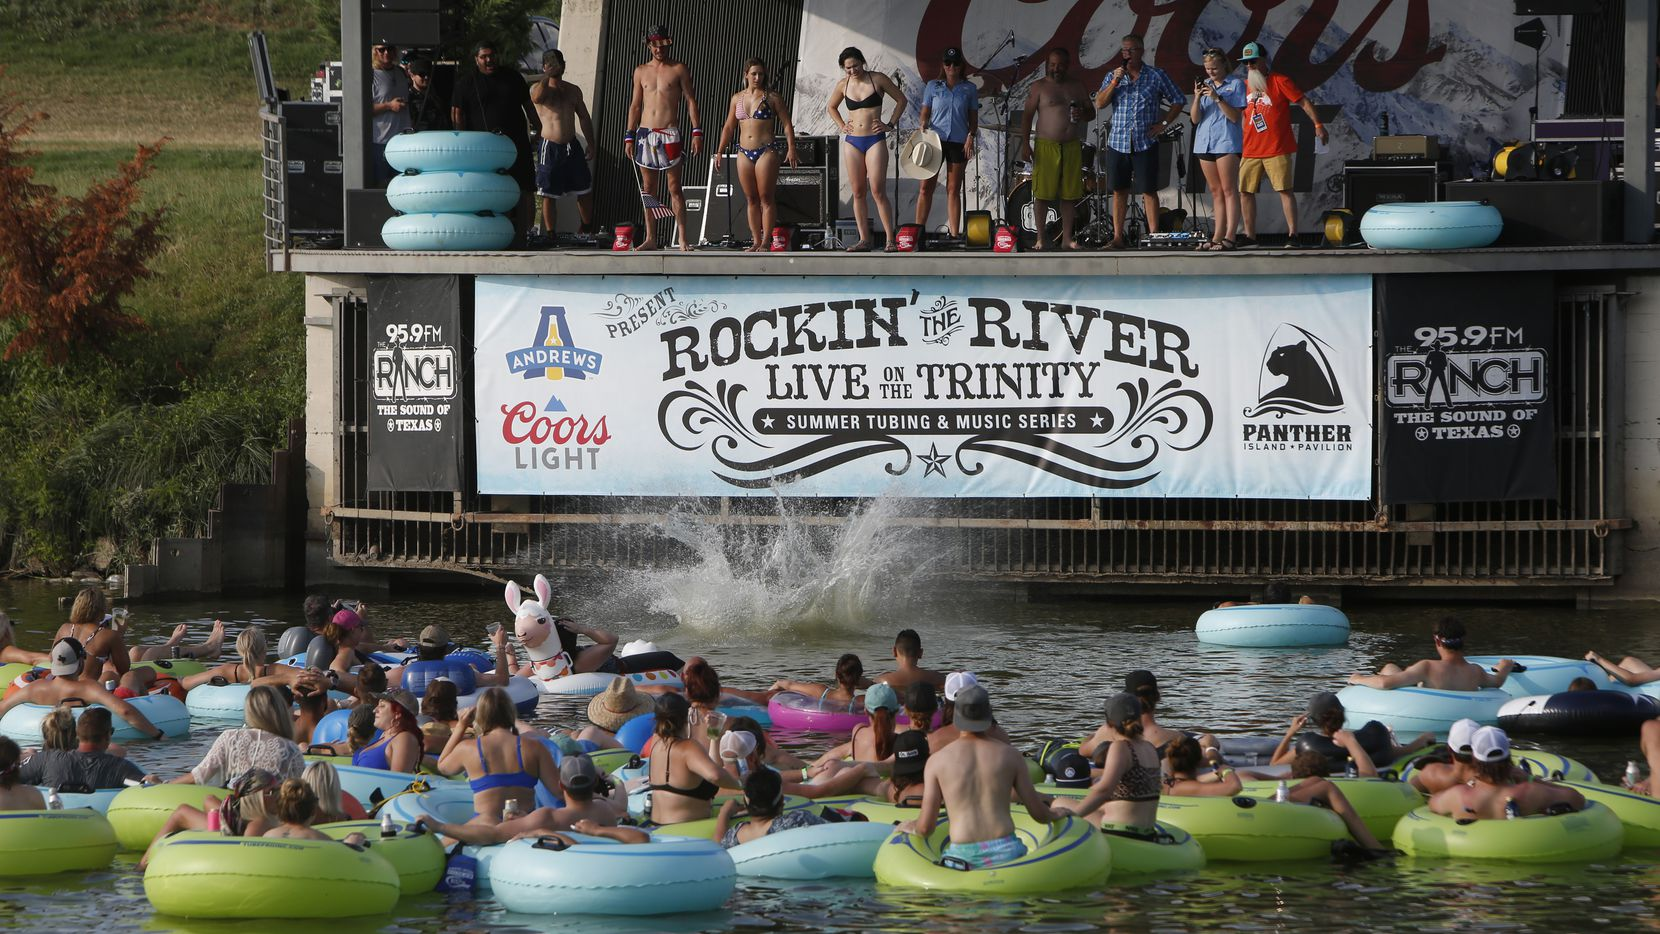 The Rockin' the River series featuring Texas country musicians will come to a close Aug. 7 at Panther Island Pavilion in Fort Worth. But Sunday Fundays continue through Sept. 5 at the same location.